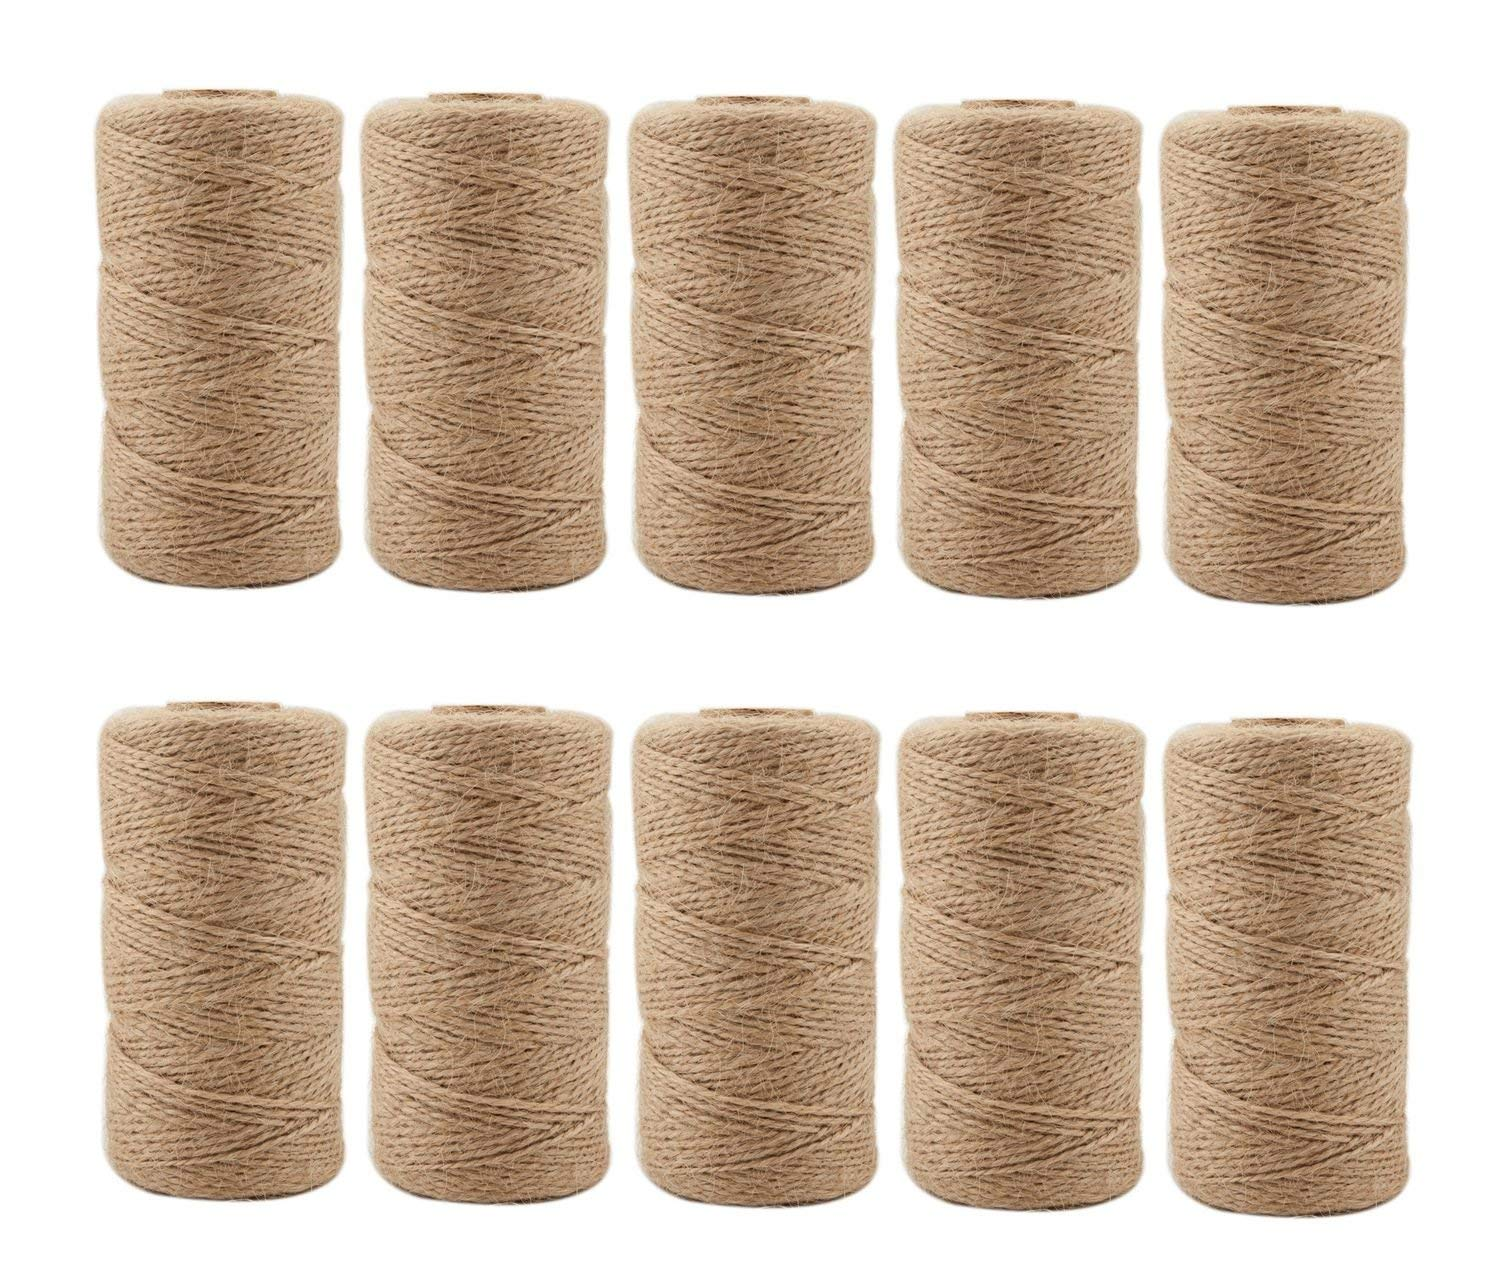 Jute Twine 3280 Feet 2mm 3Ply Natural Arts Crafts Jute Rope Durable Packing String for Gardening Applications(10pcs x 328feet)